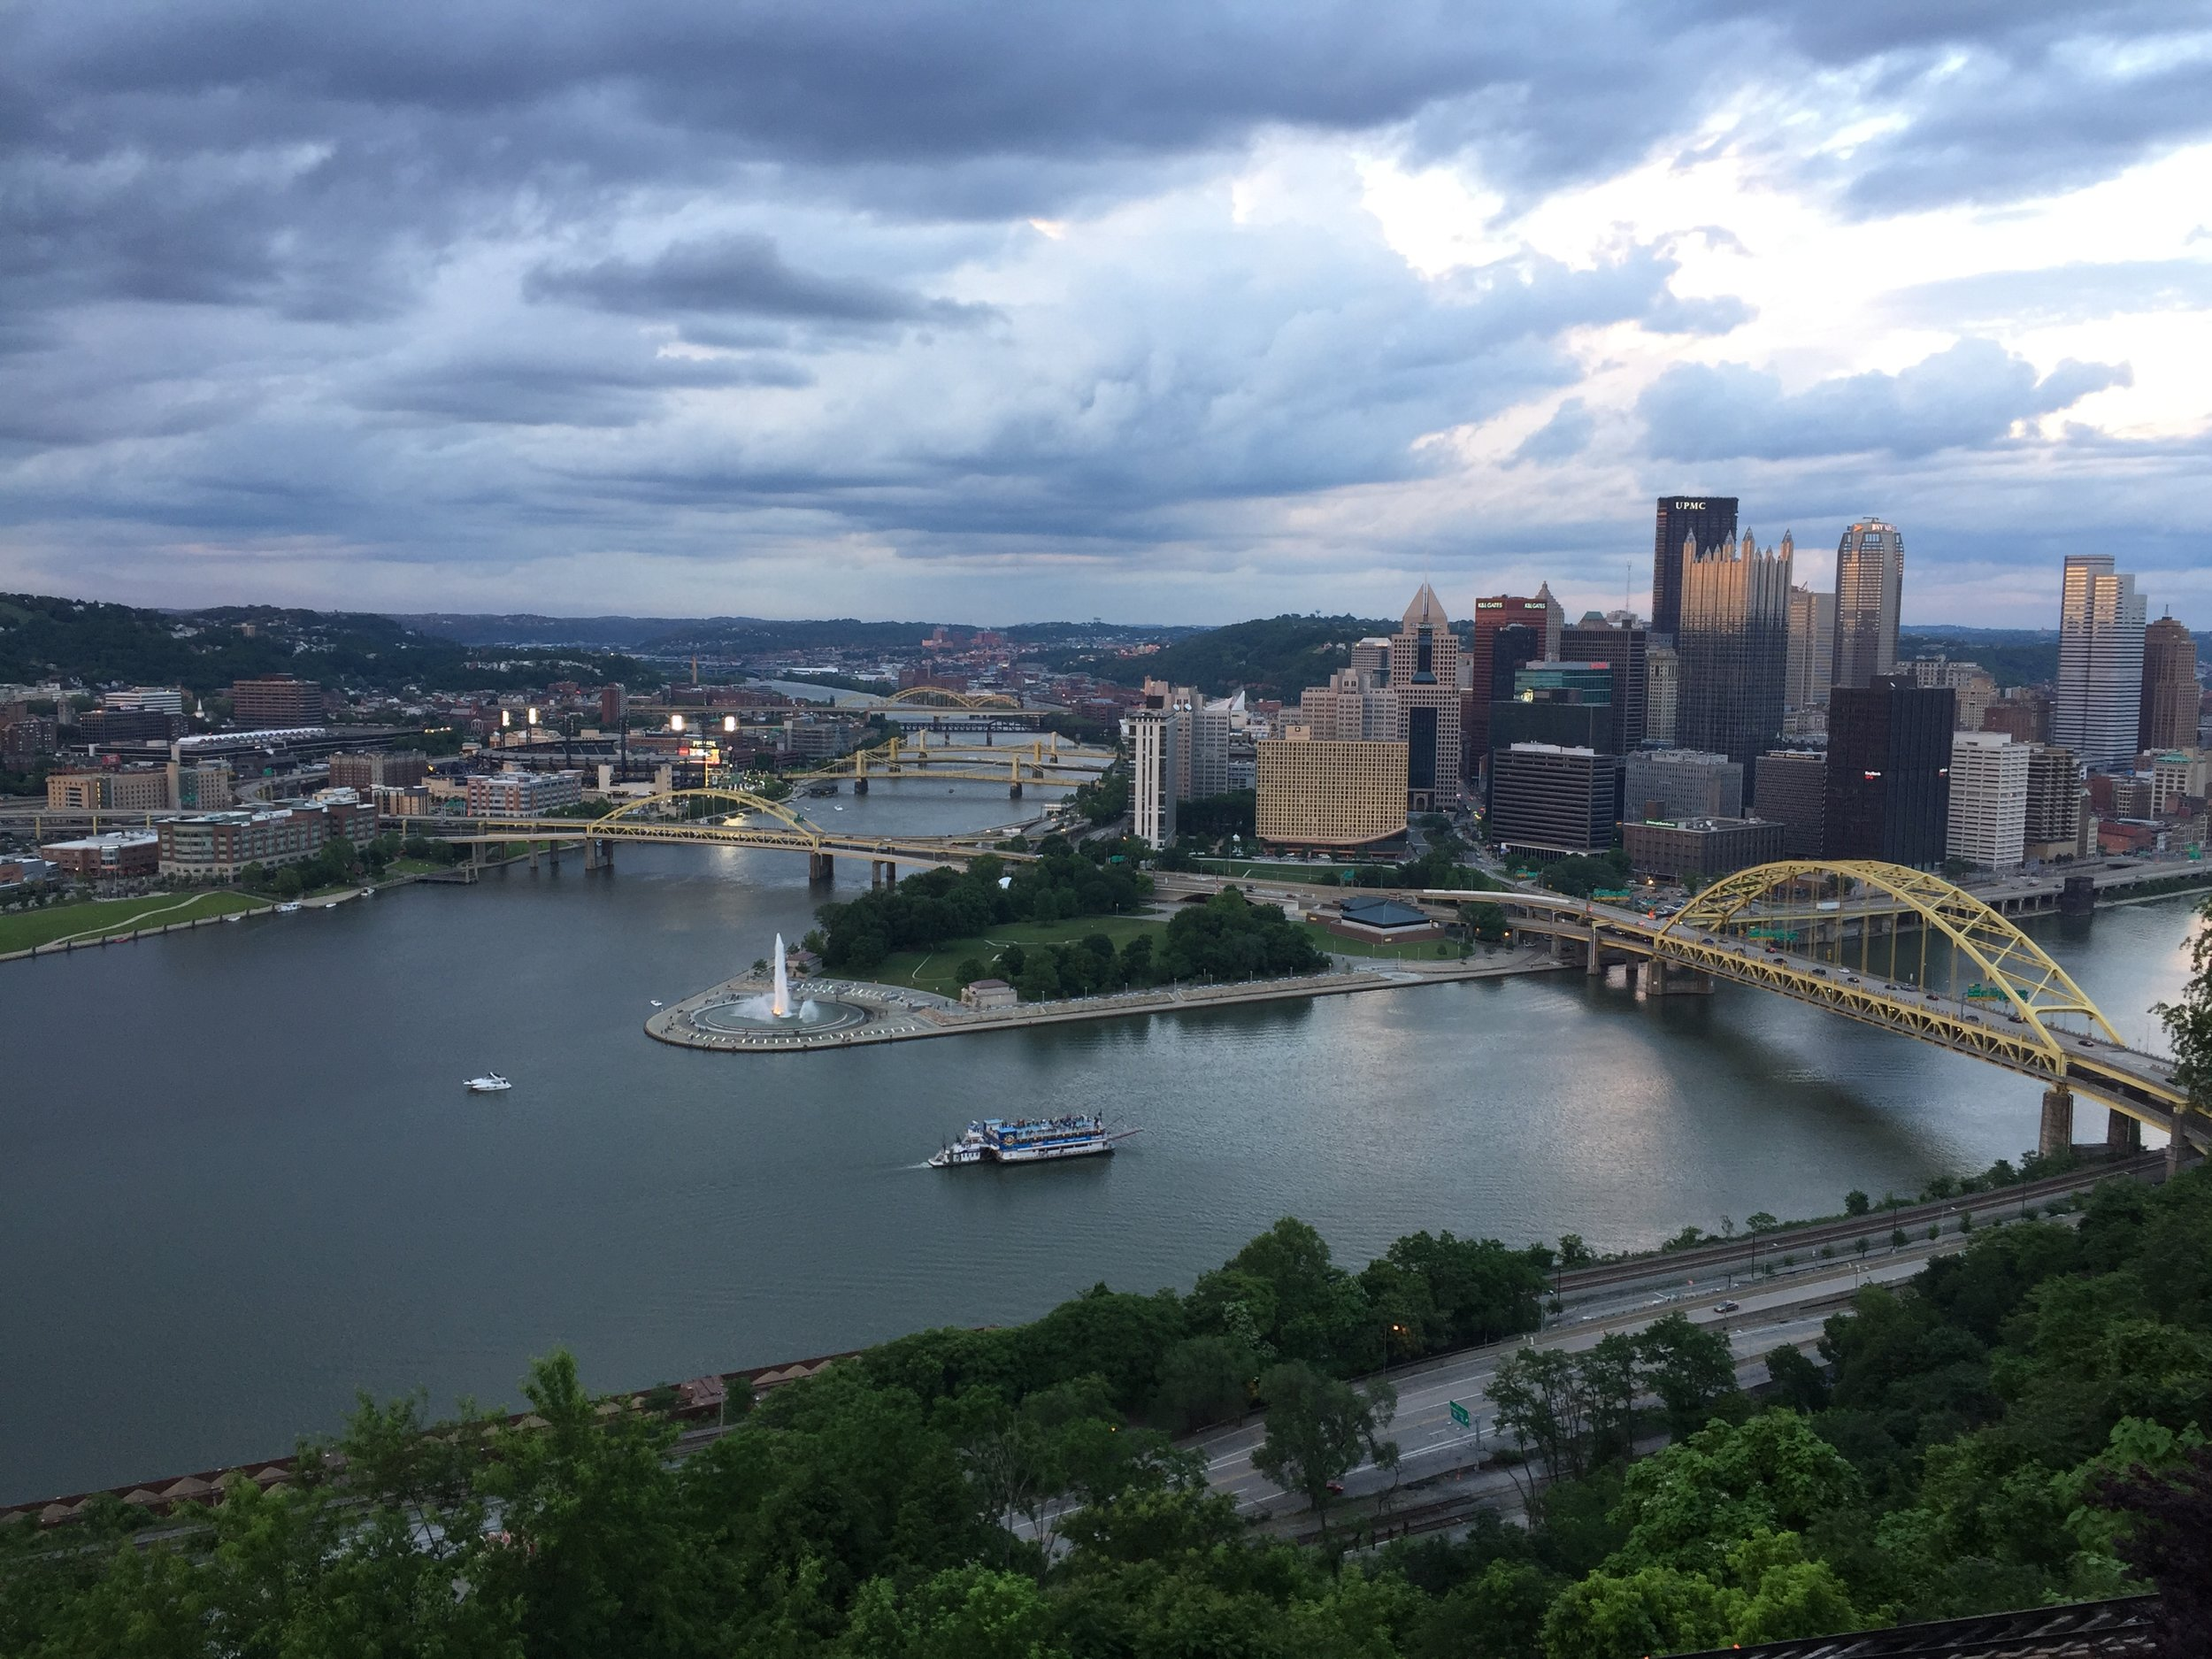 The view looking down from the Duquesne Incline